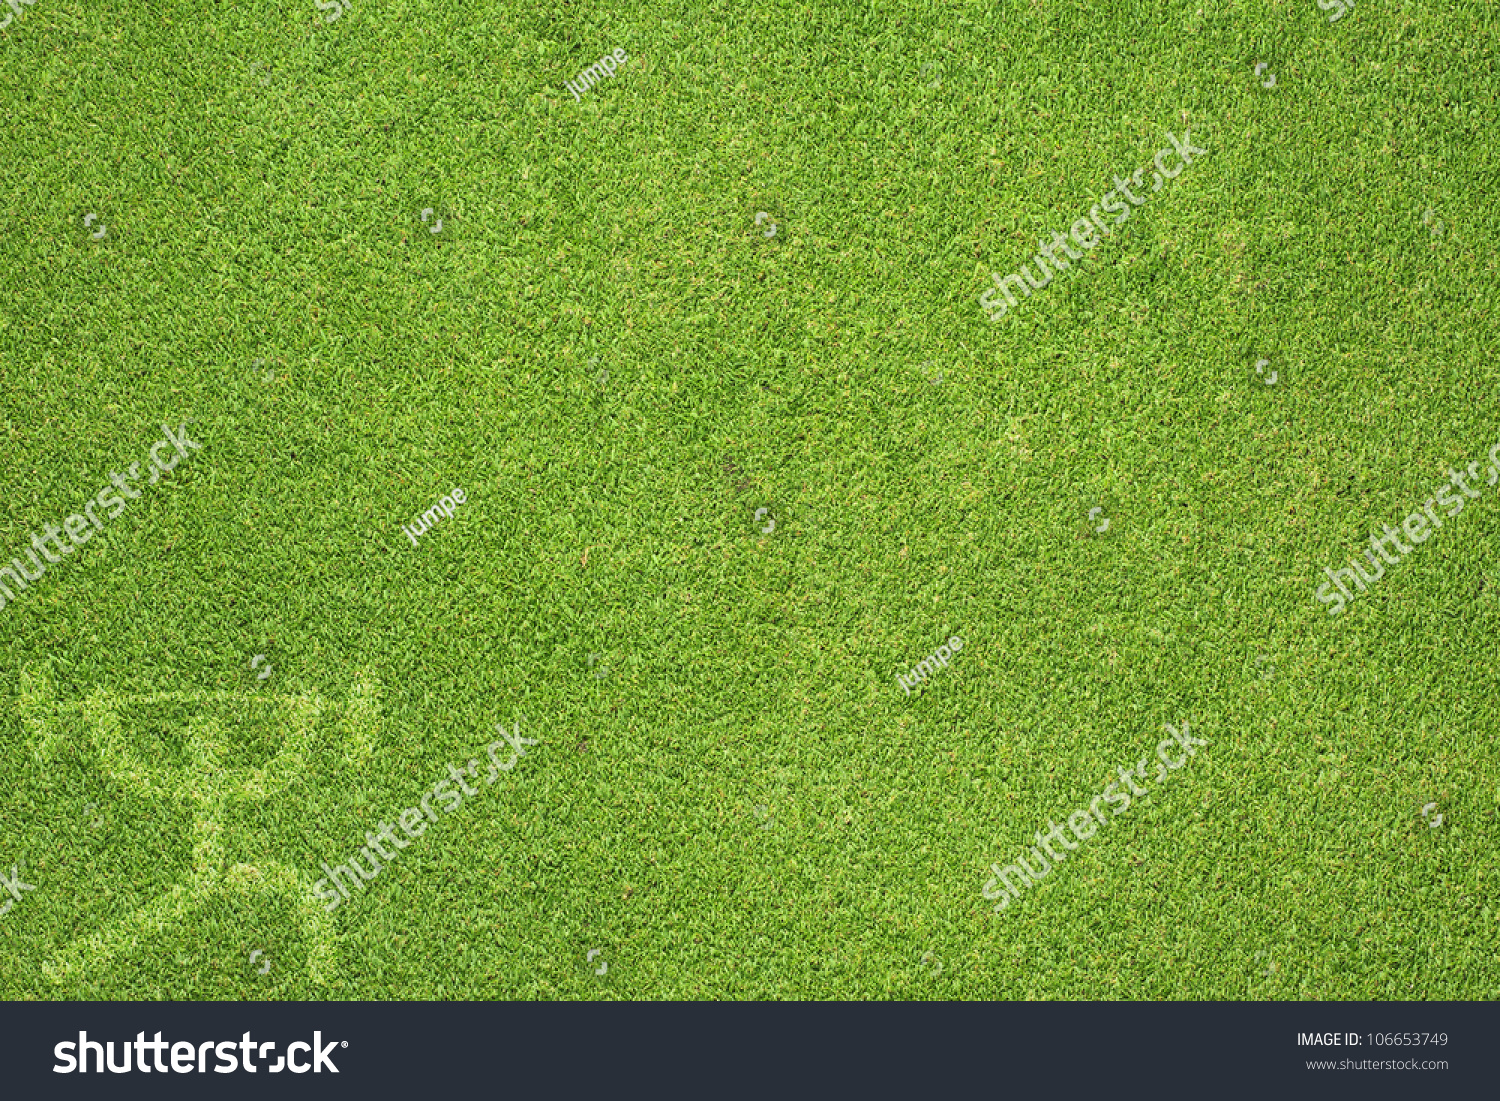 sport weight on green grass texture stock illustration 106653749